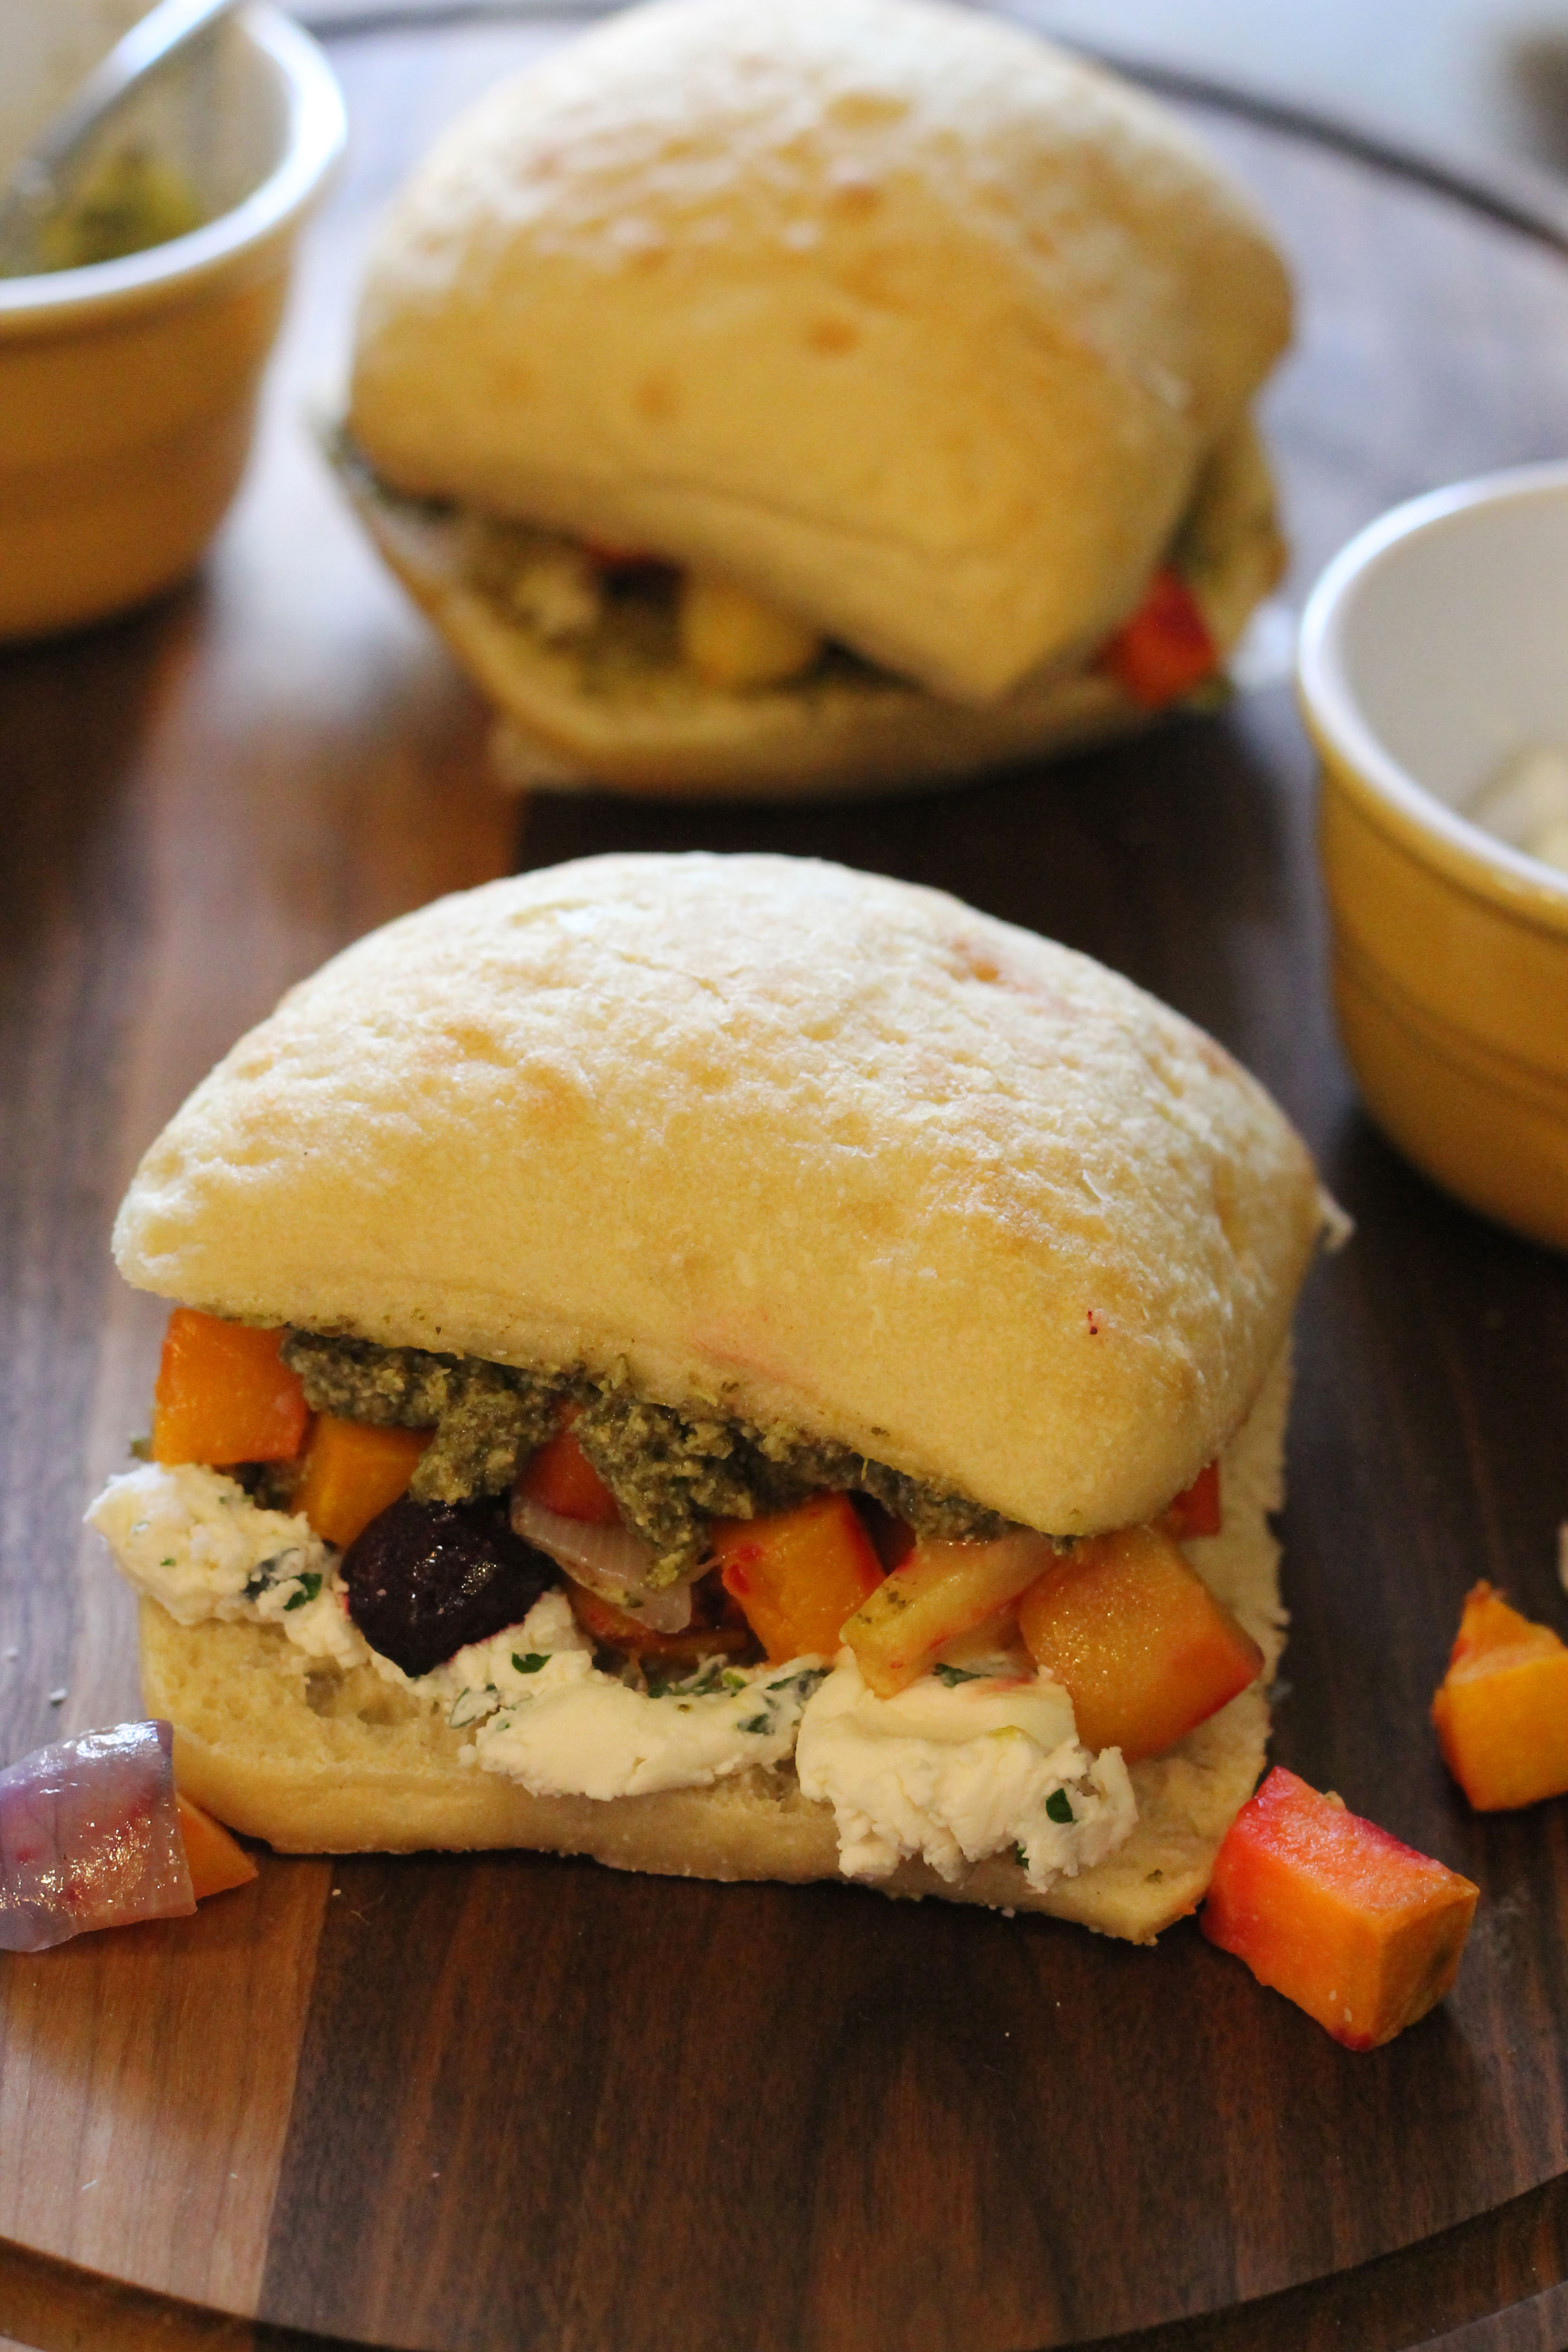 Winter Vegetable Sandwich with Pesto and Whipped Goat ...